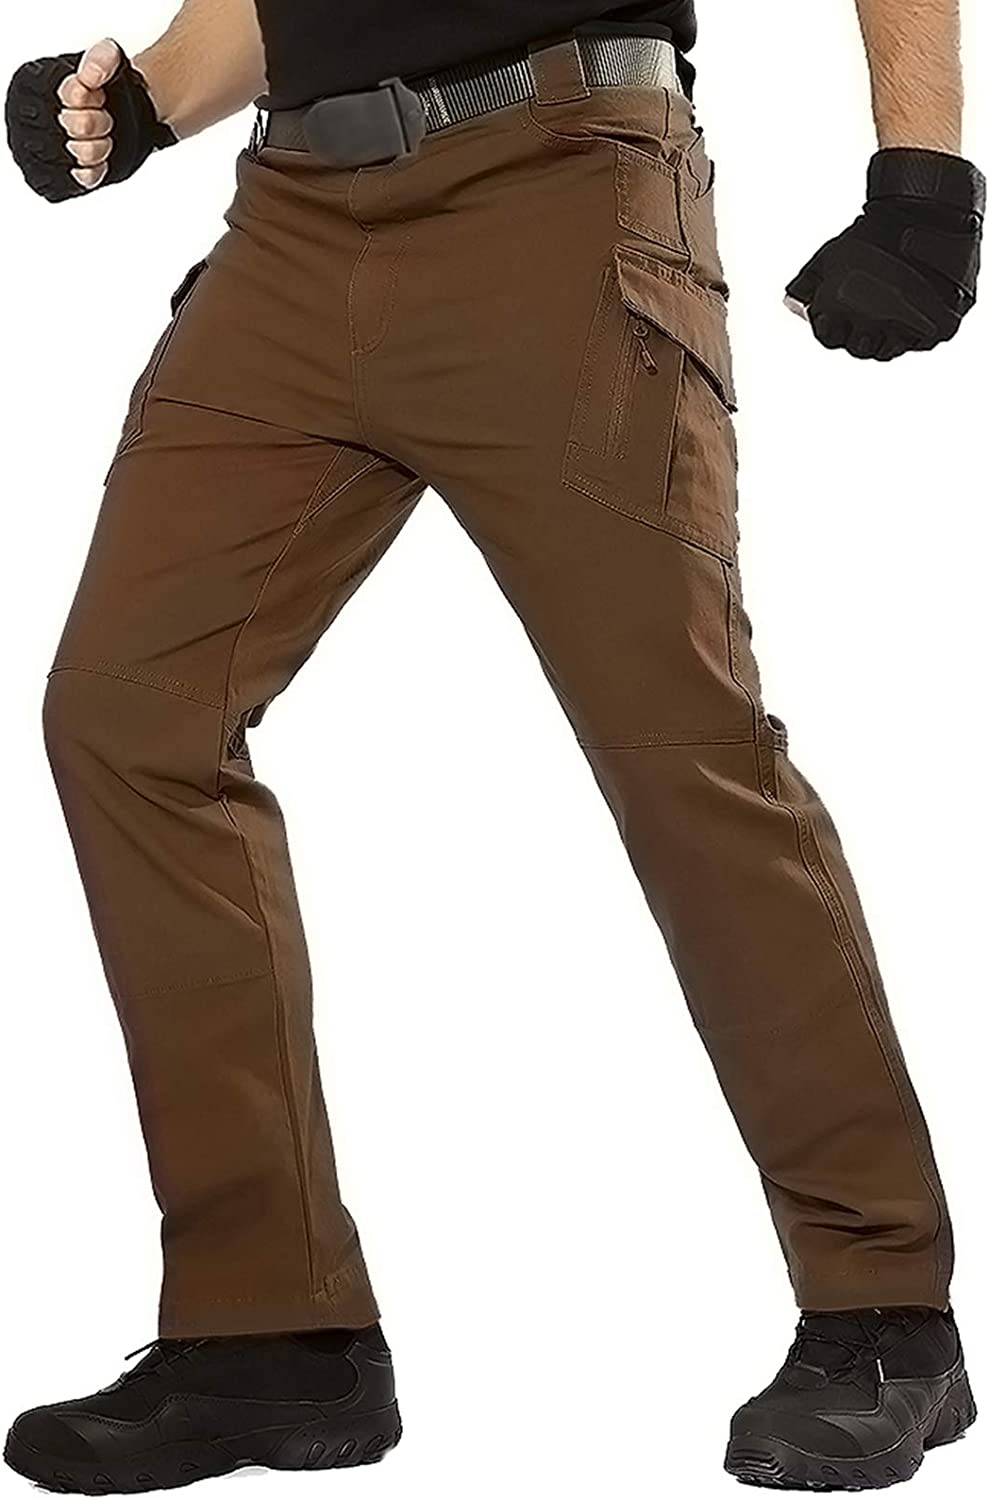 TACT BESU Men's Outdoor Military Pants Rip-Stop Cotton Courier shipping free shipping Tactical Sales